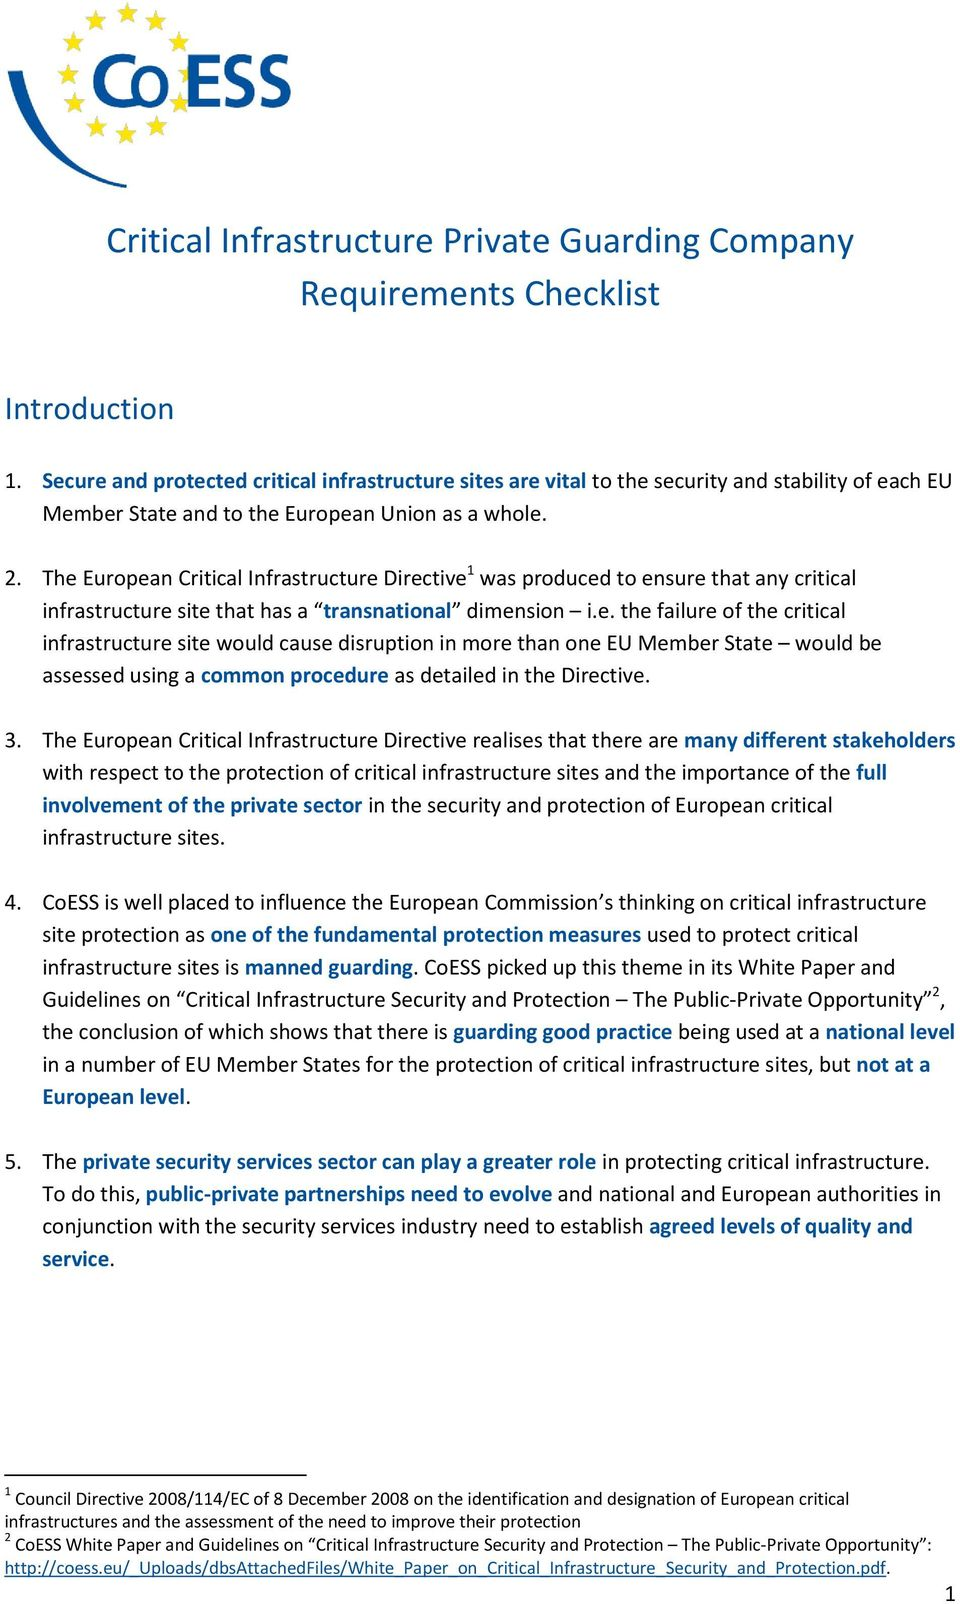 The European Critical Infrastructure Directive 1 was produced to ensure that any critical infrastructure site that has a transnational dimension i.e. the failure of the critical infrastructure site would cause disruption in more than one EU Member State would be assessed using a common procedure as detailed in the Directive.